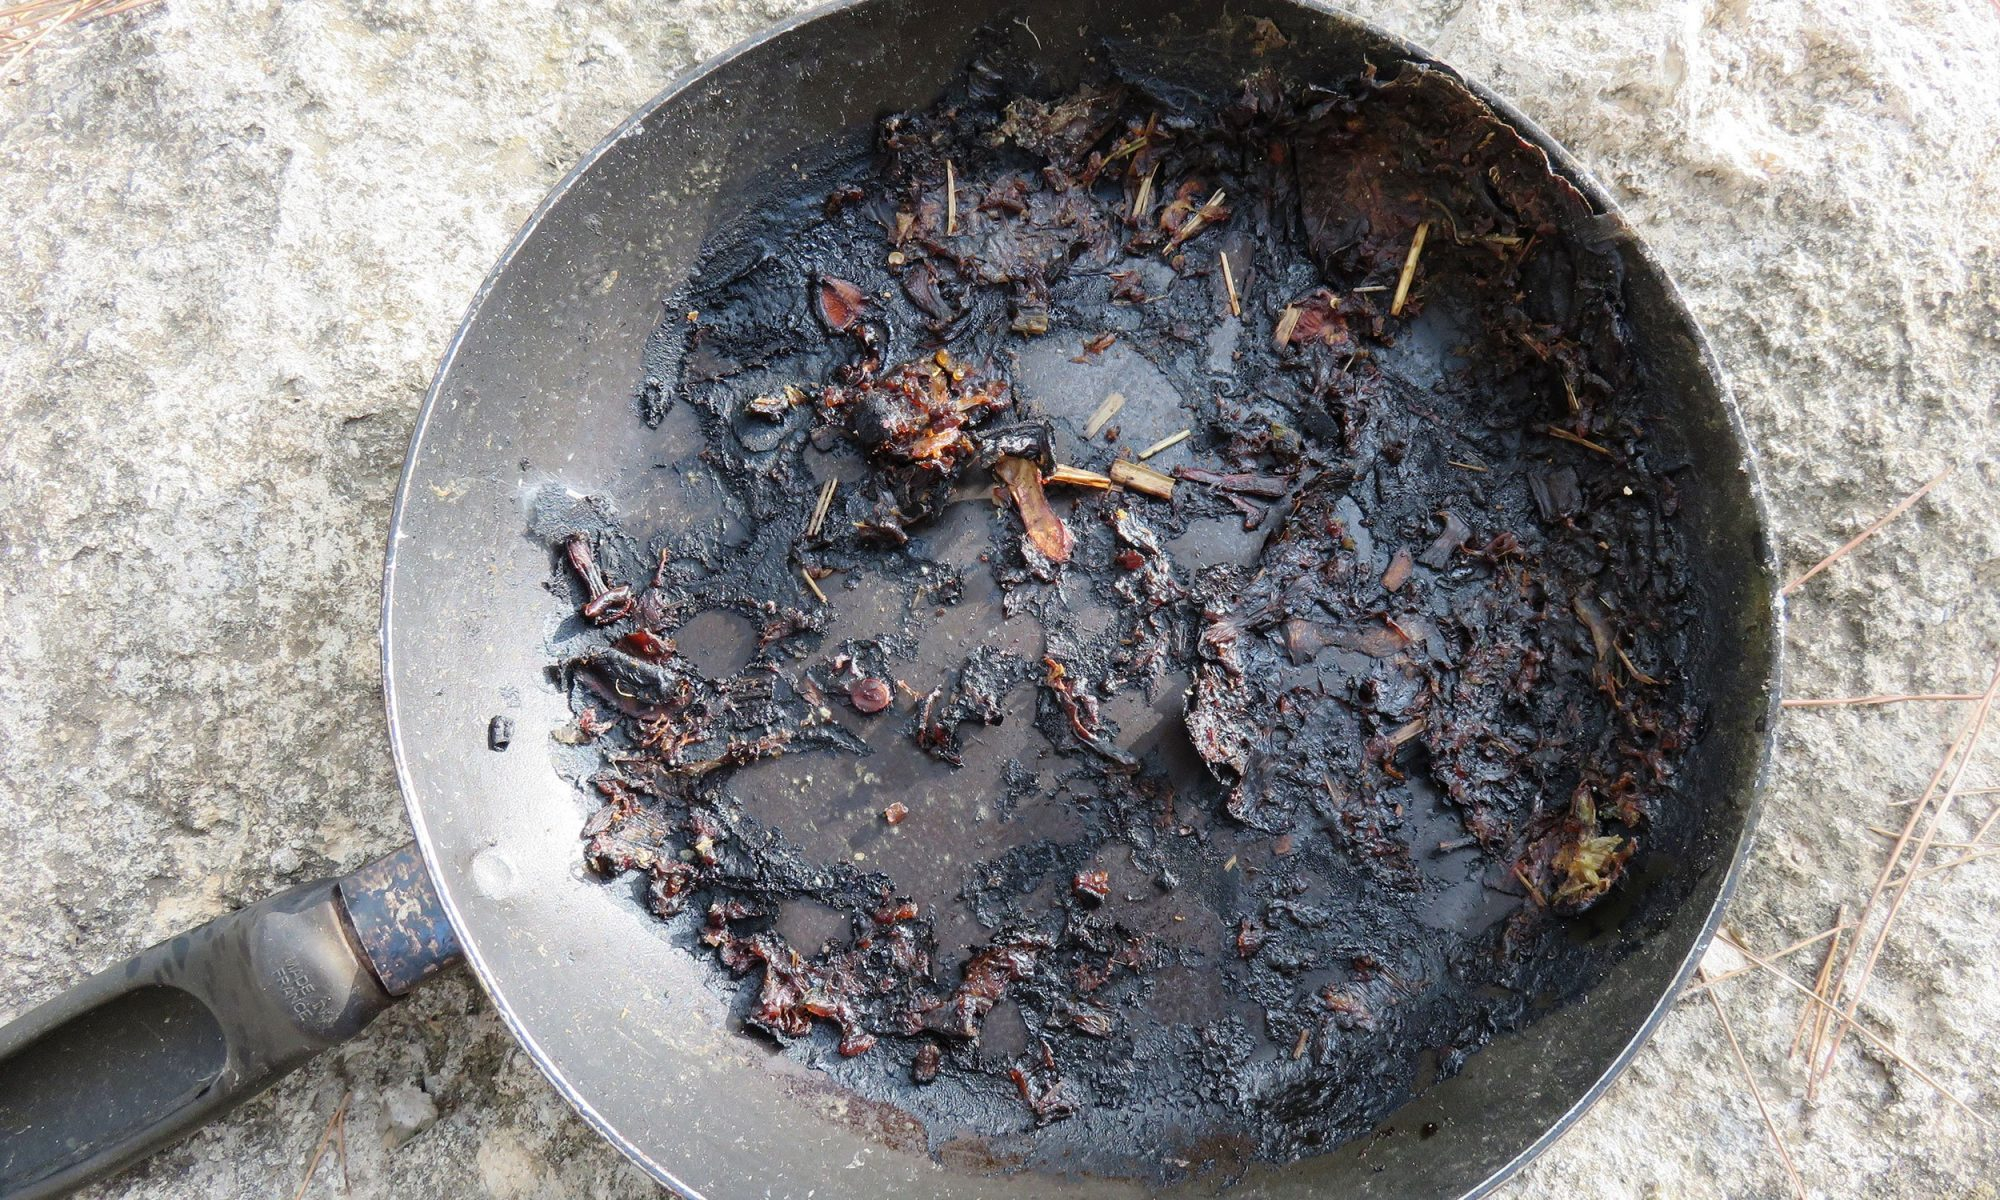 EC: How to Clean a Burnt Pan